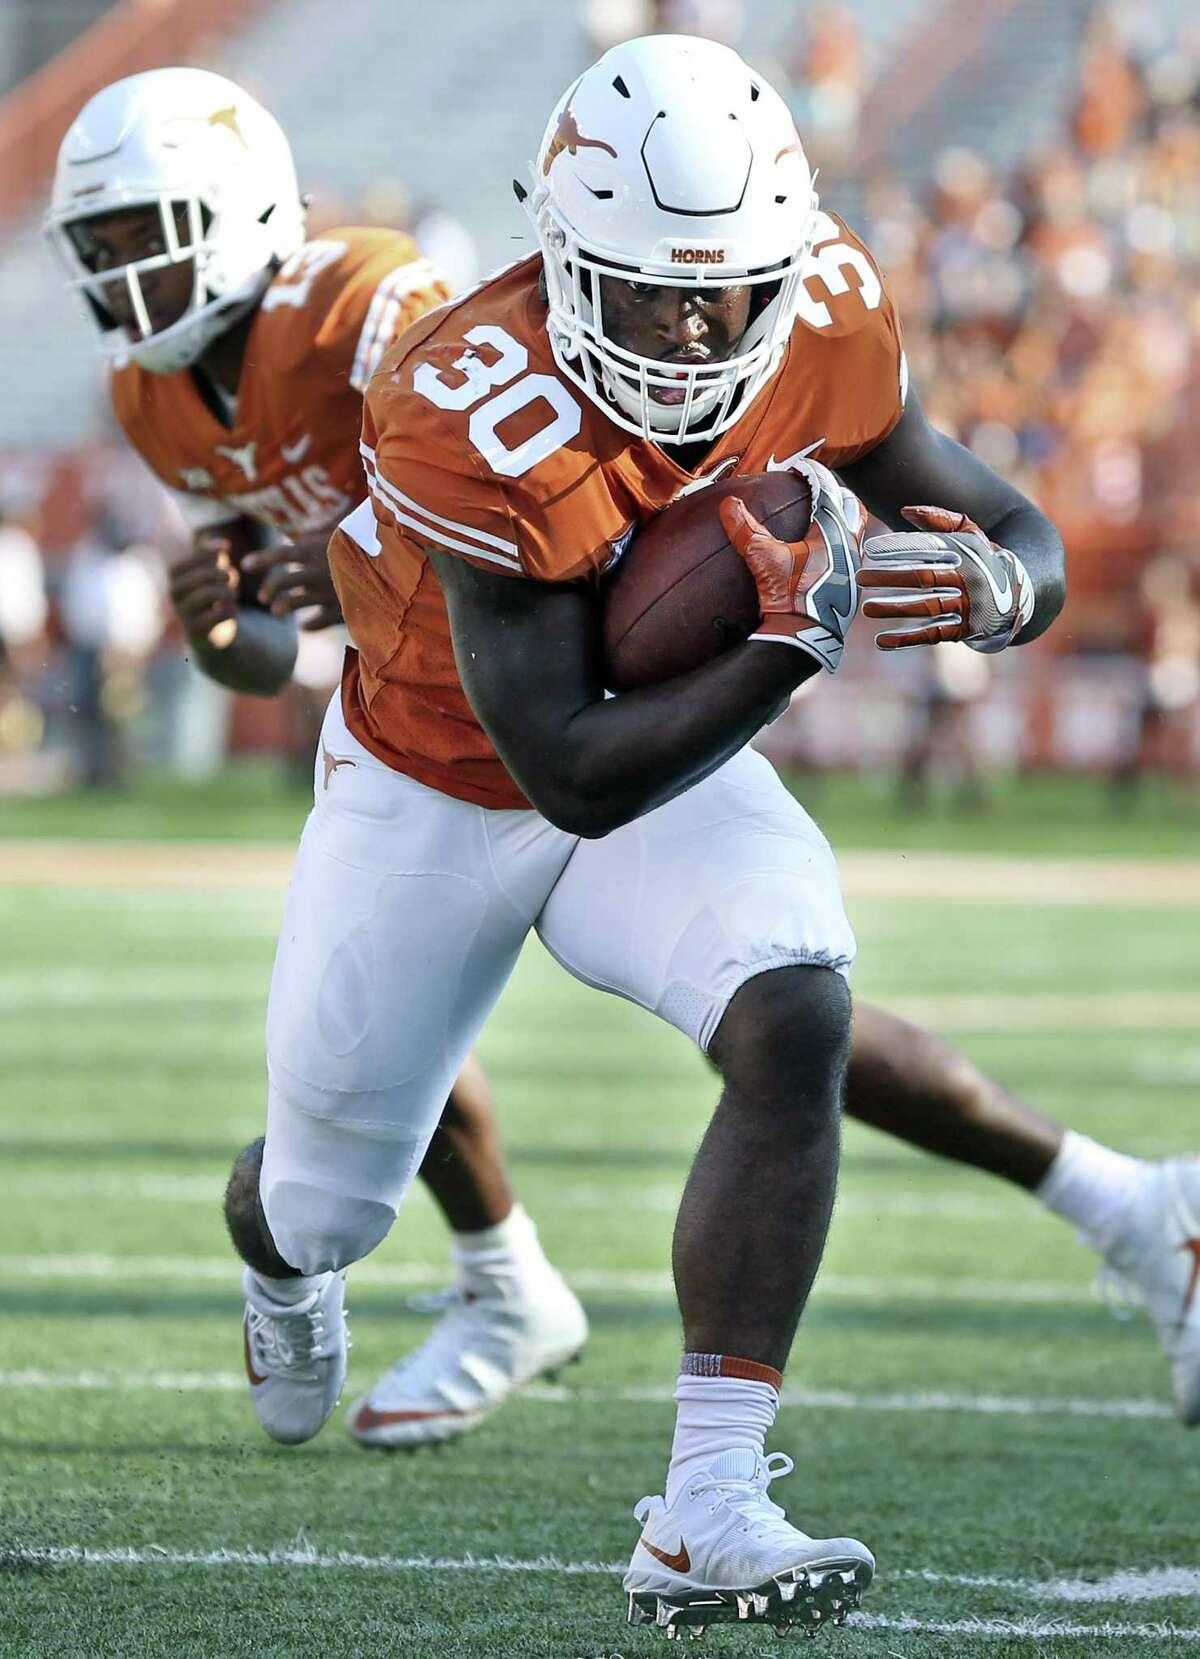 2) If last week's rushing performance is a fluke? In UT's game against Baylor Toneil Carter rumbled for 70 yards on 15 carries. Daniel Young added 60 yards on seven attempts. Carter scored from 19 yards out, Young from 31.